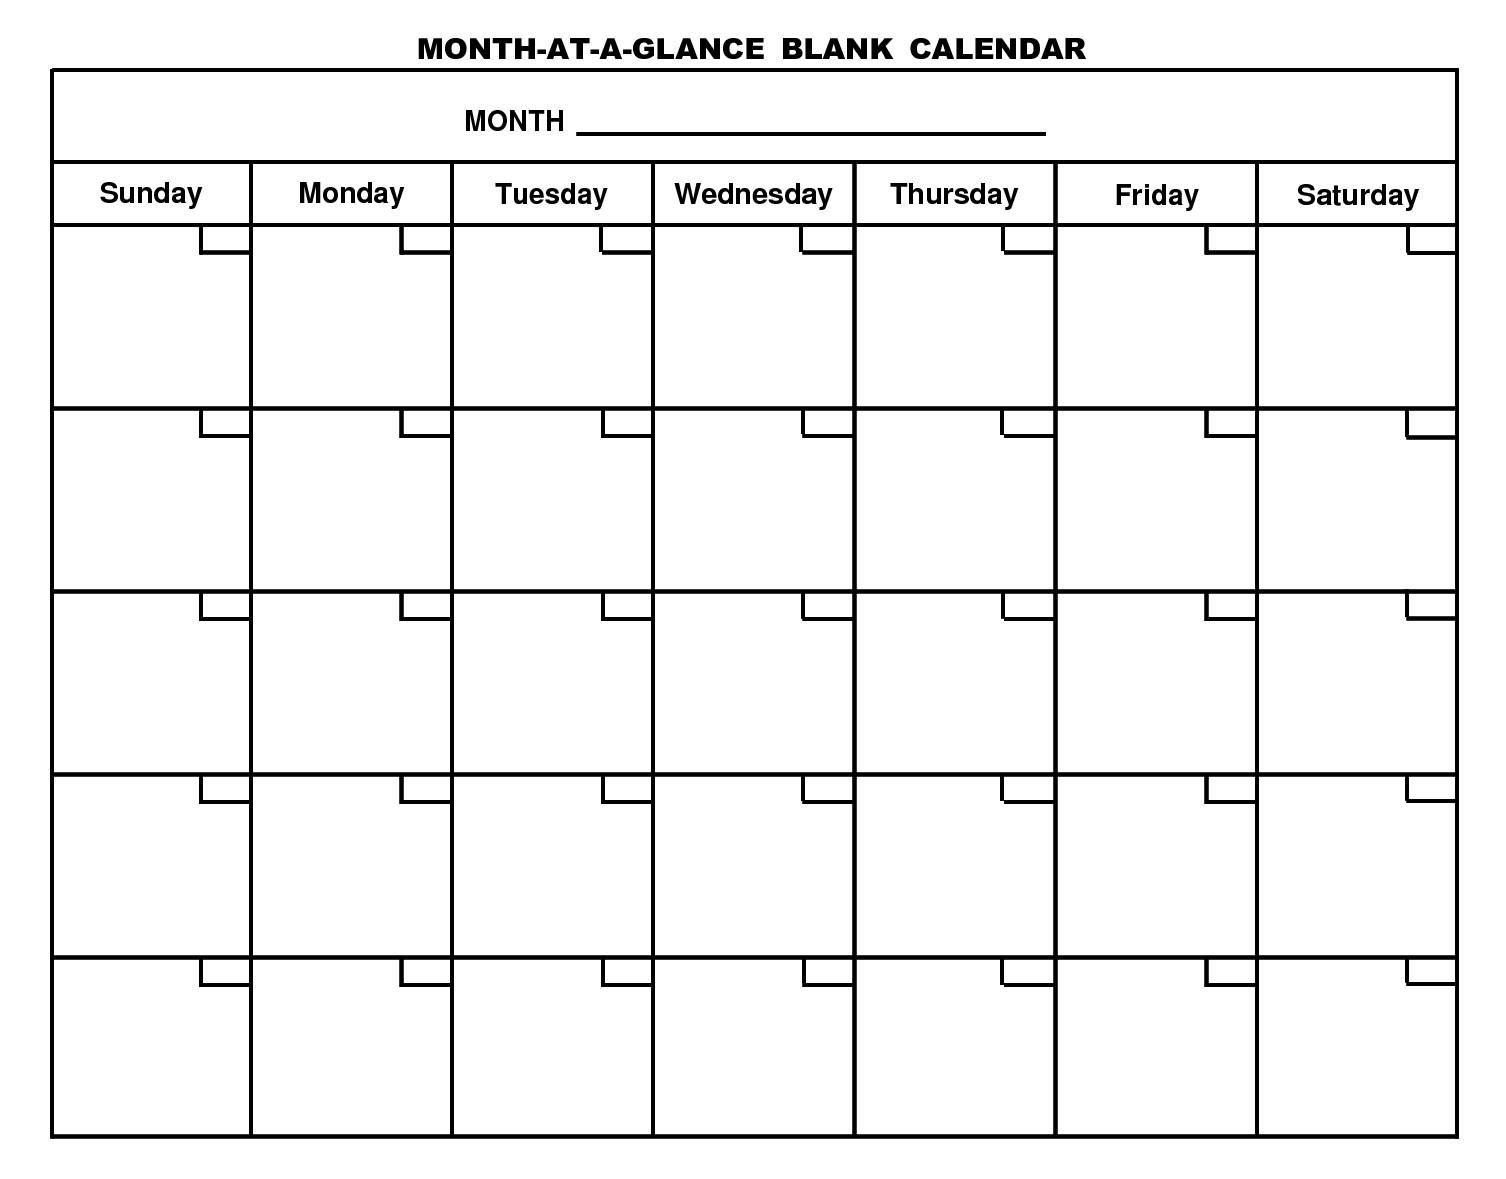 Free Printable Monthly Calendar With Large Boxes Skymaps Exceptional Month At A Glance Blank Template